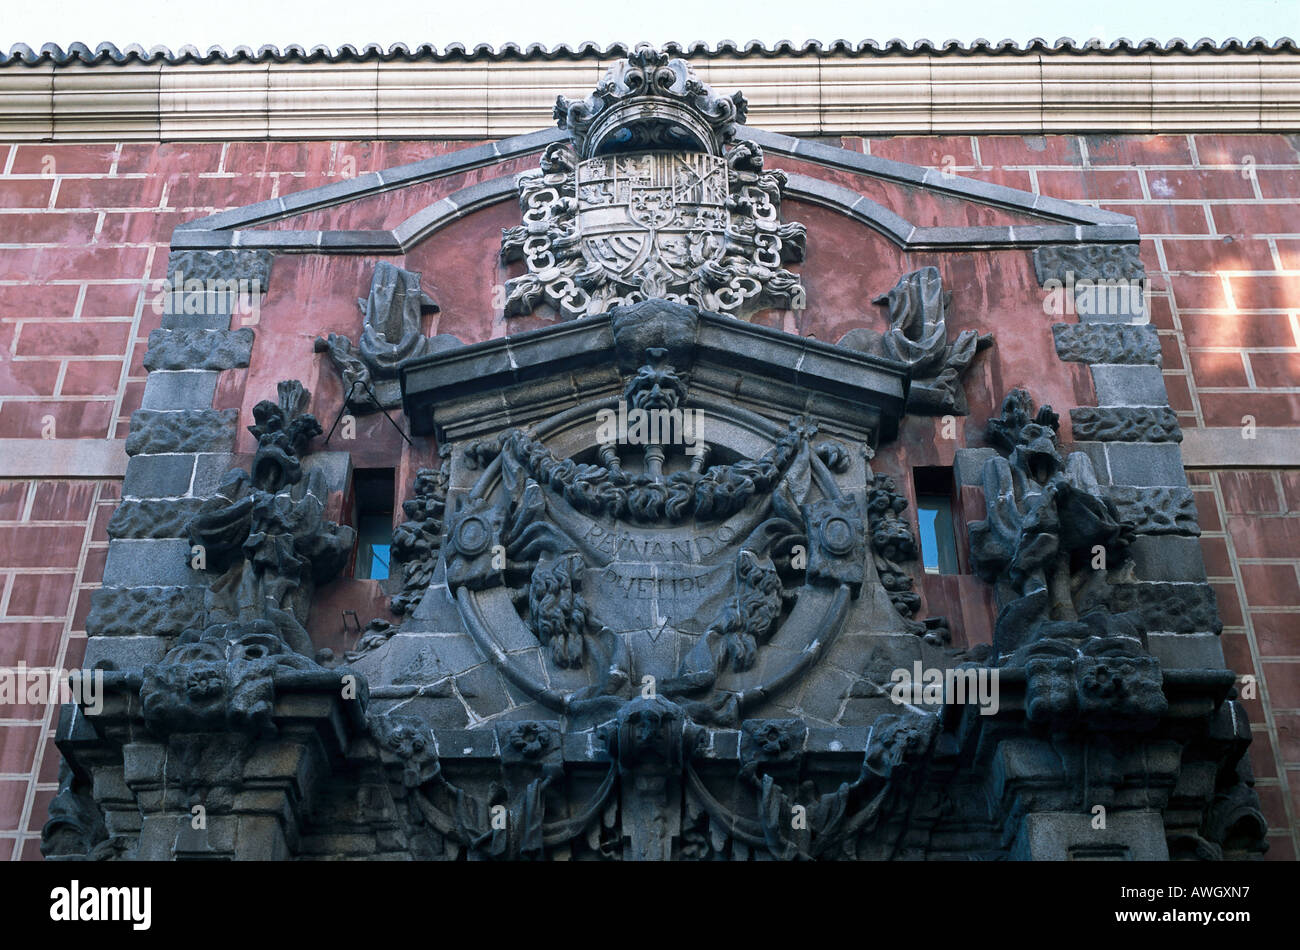 Spain, Madrid, Calle de Conde Duque 11, Centro Cultural Conde Duque, carved stonework on upper façade of 1920s cinema, - Stock Image